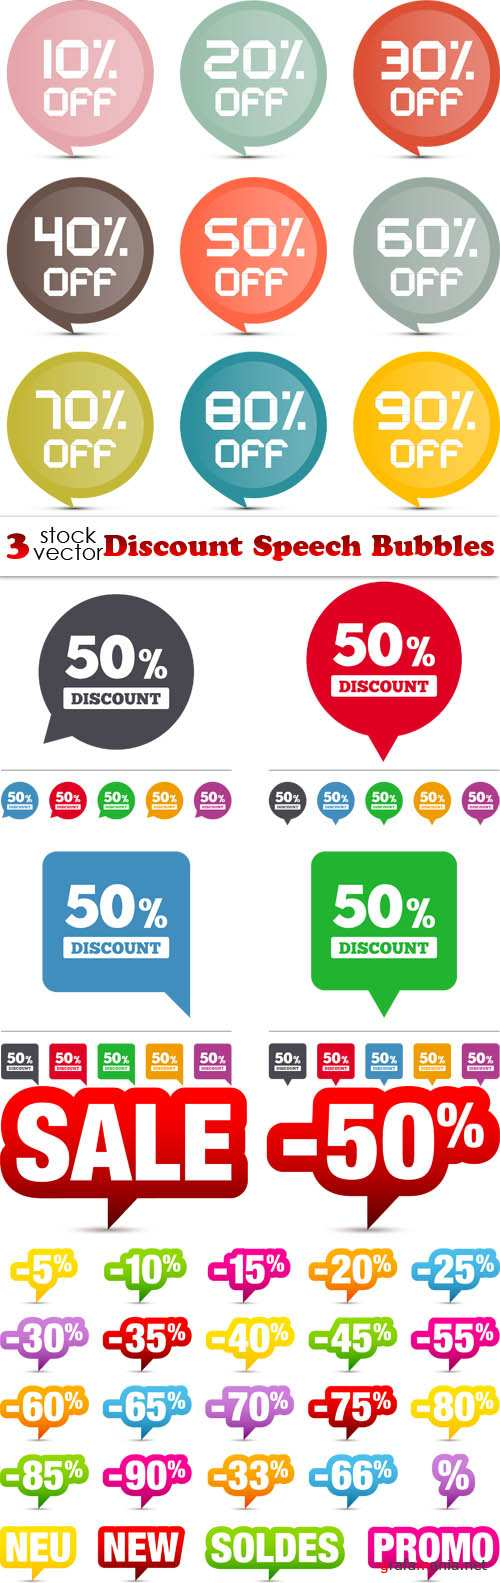 Vectors - Discount Speech Bubbles